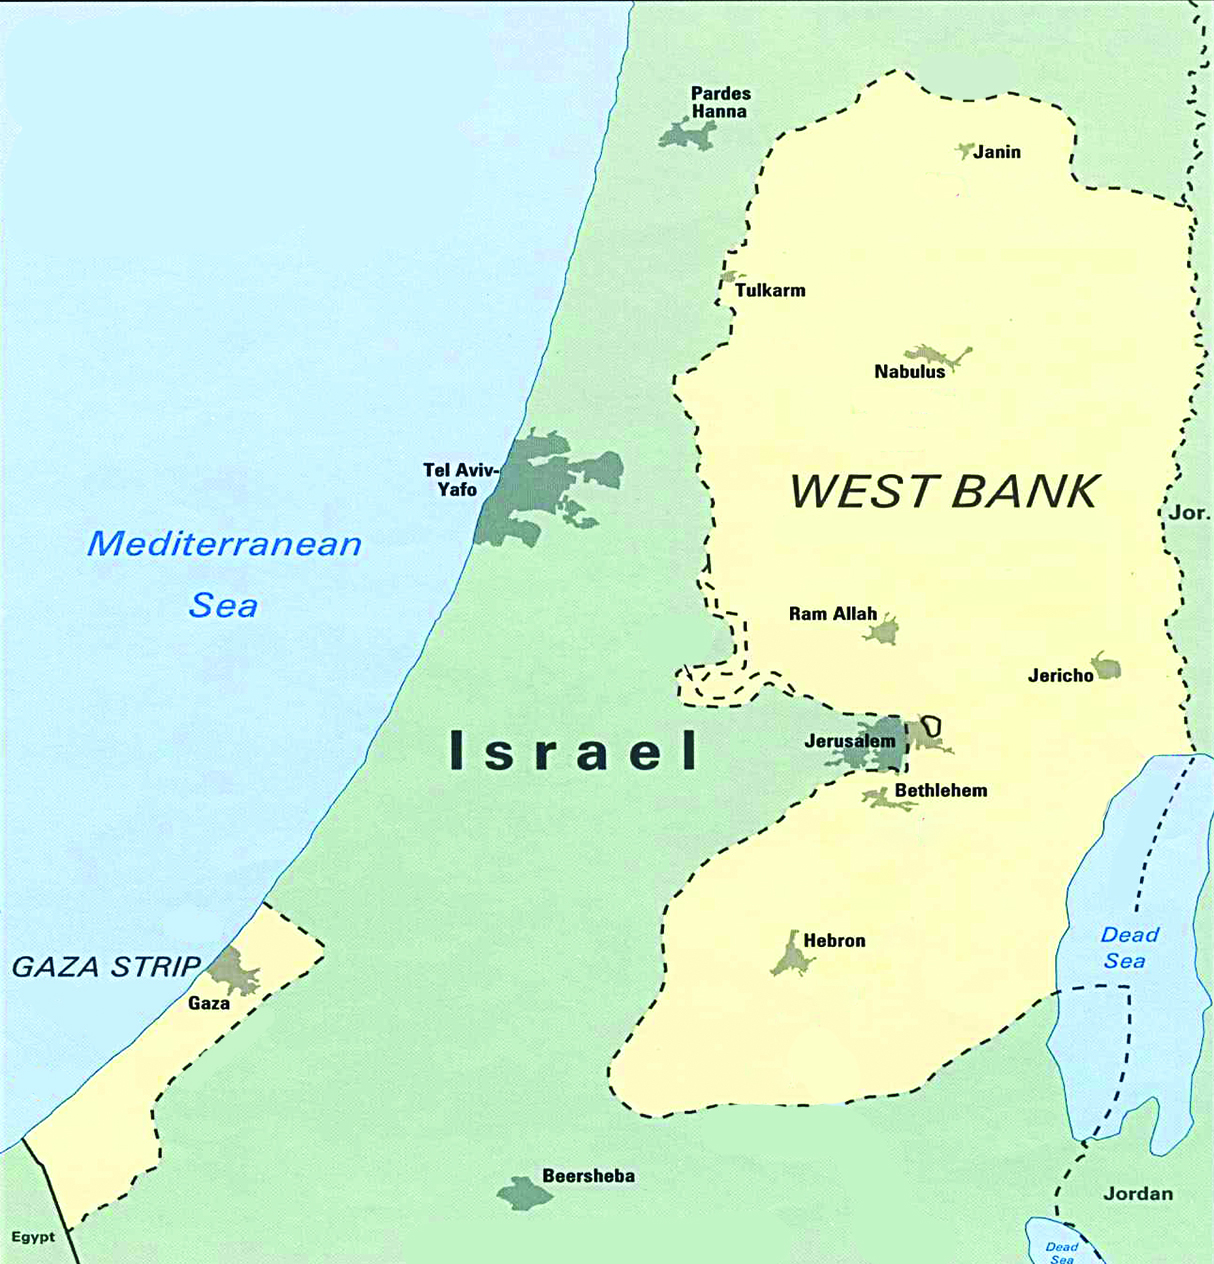 Medio Oriente: Israele vuole la West Bank - Geopolitica - Commoditiestrading